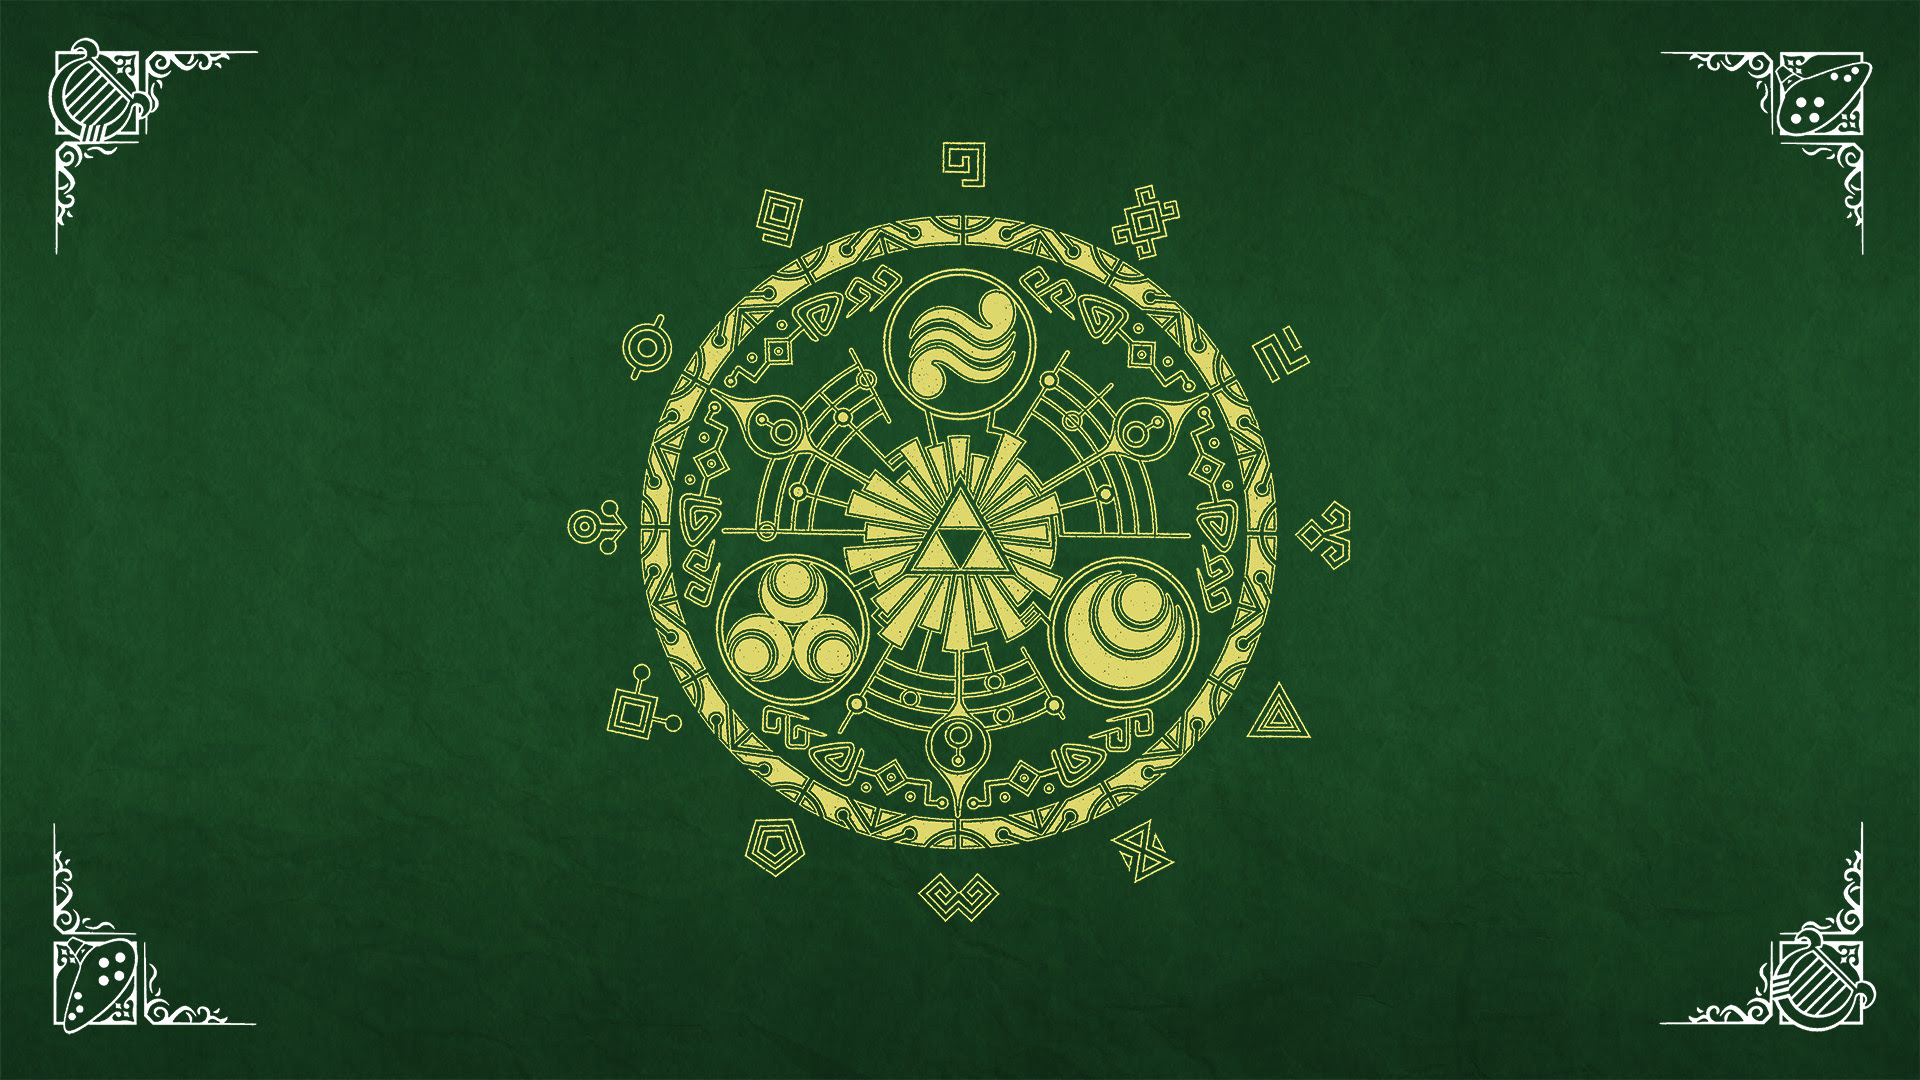 Legend Of Zelda Phone Wallpaper 1920x1080